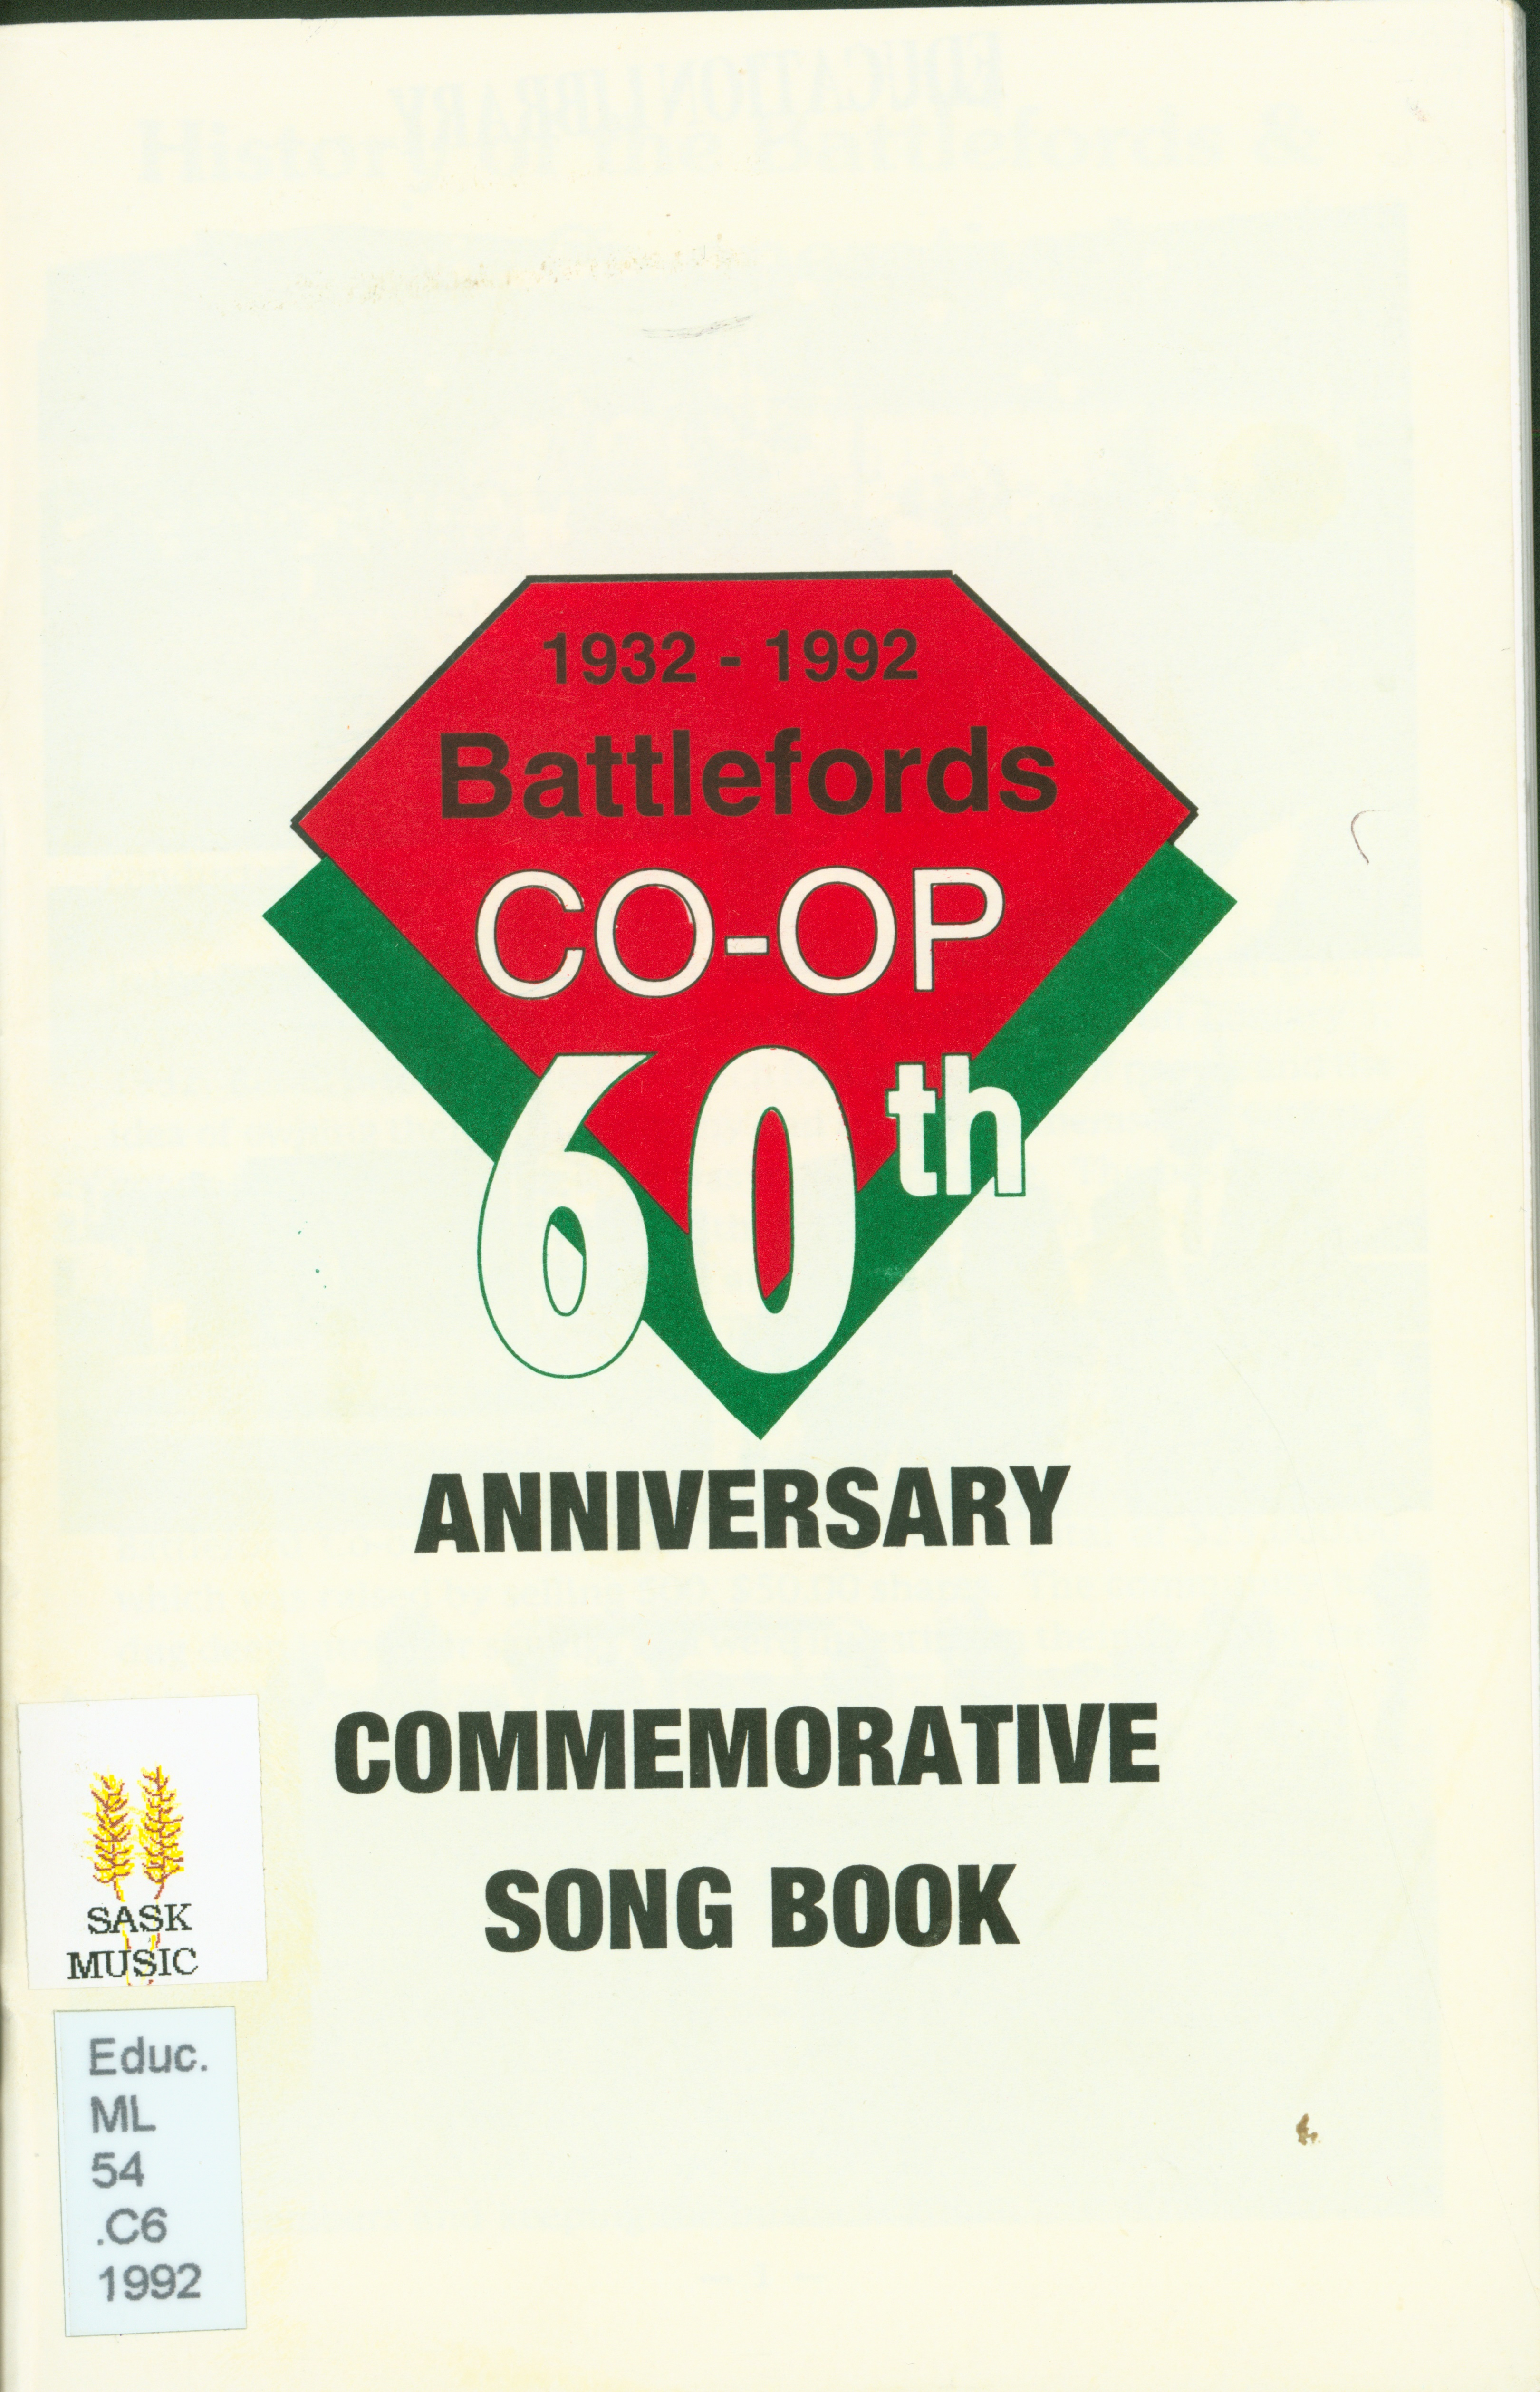 Battleford Co-Op 60th Anniversary Commemorative Song Book